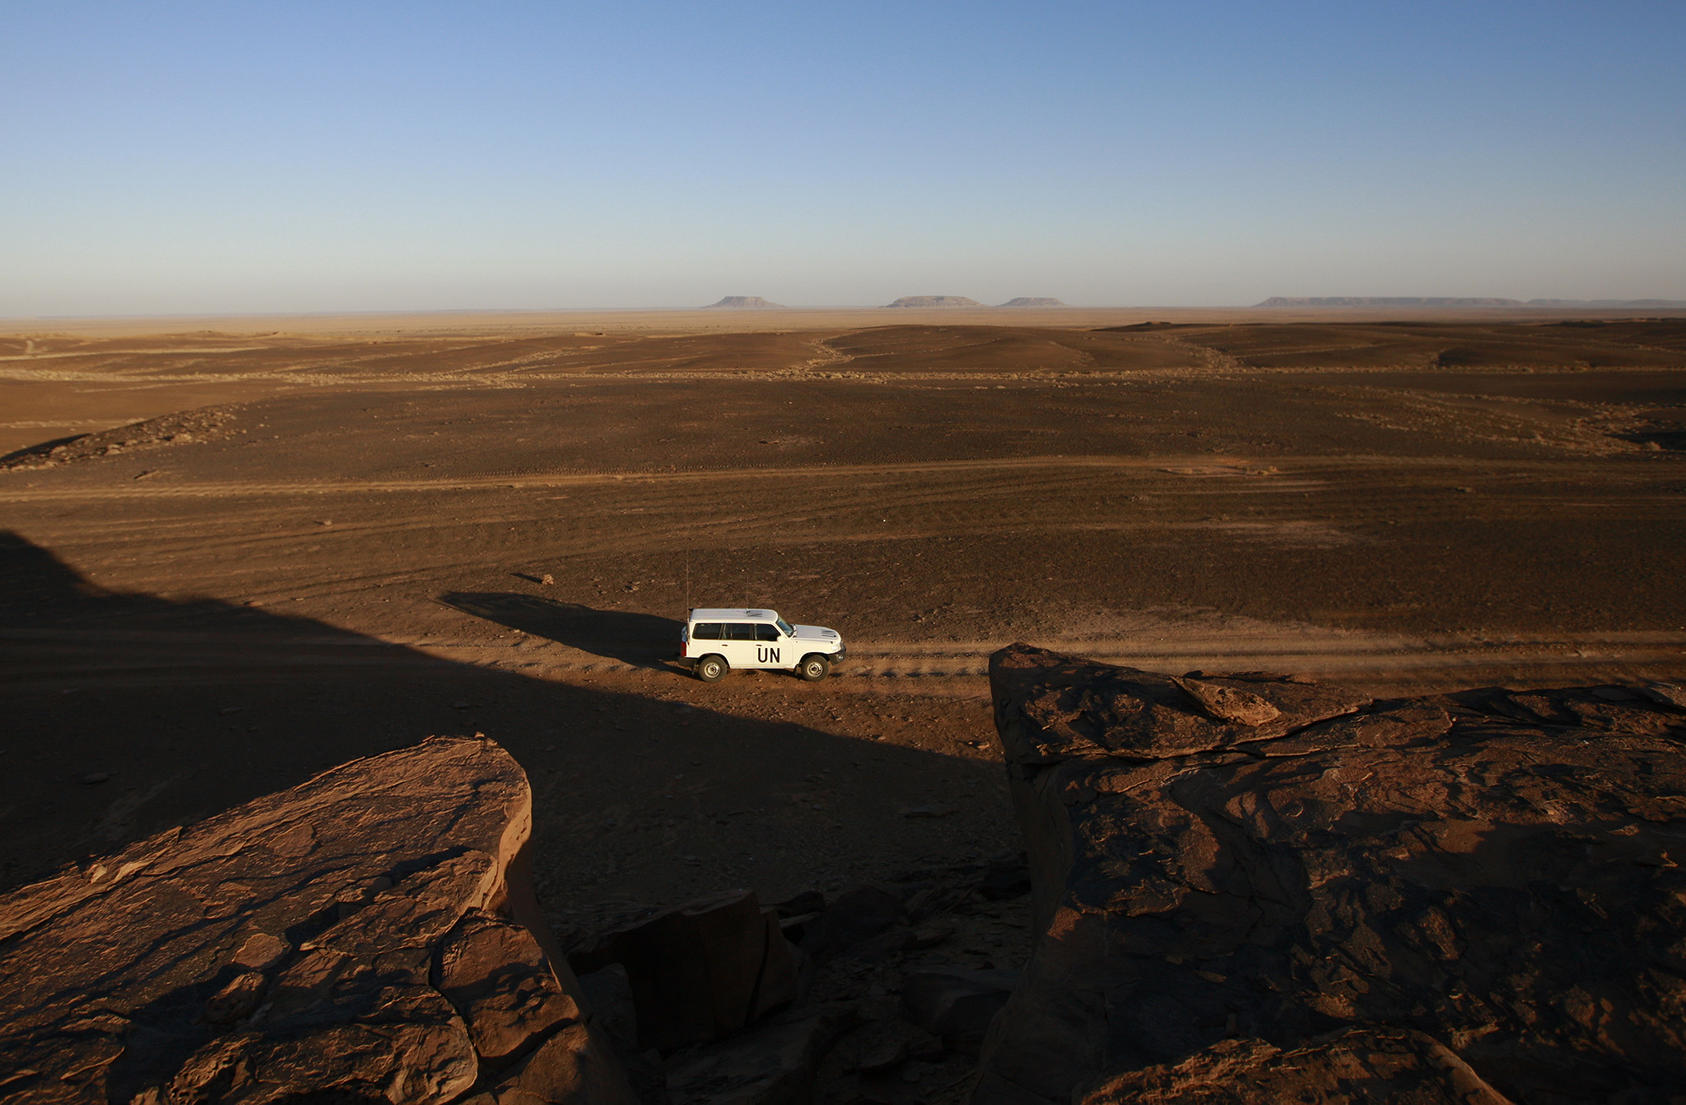 U.N. ceasefire monitors patrol the Smara region of the Western Sahara. U.S. pressure for negotiations aims to end the four-decade conflict, including the costs of U.N. involvement. (U.N. photo/Martine Perret)